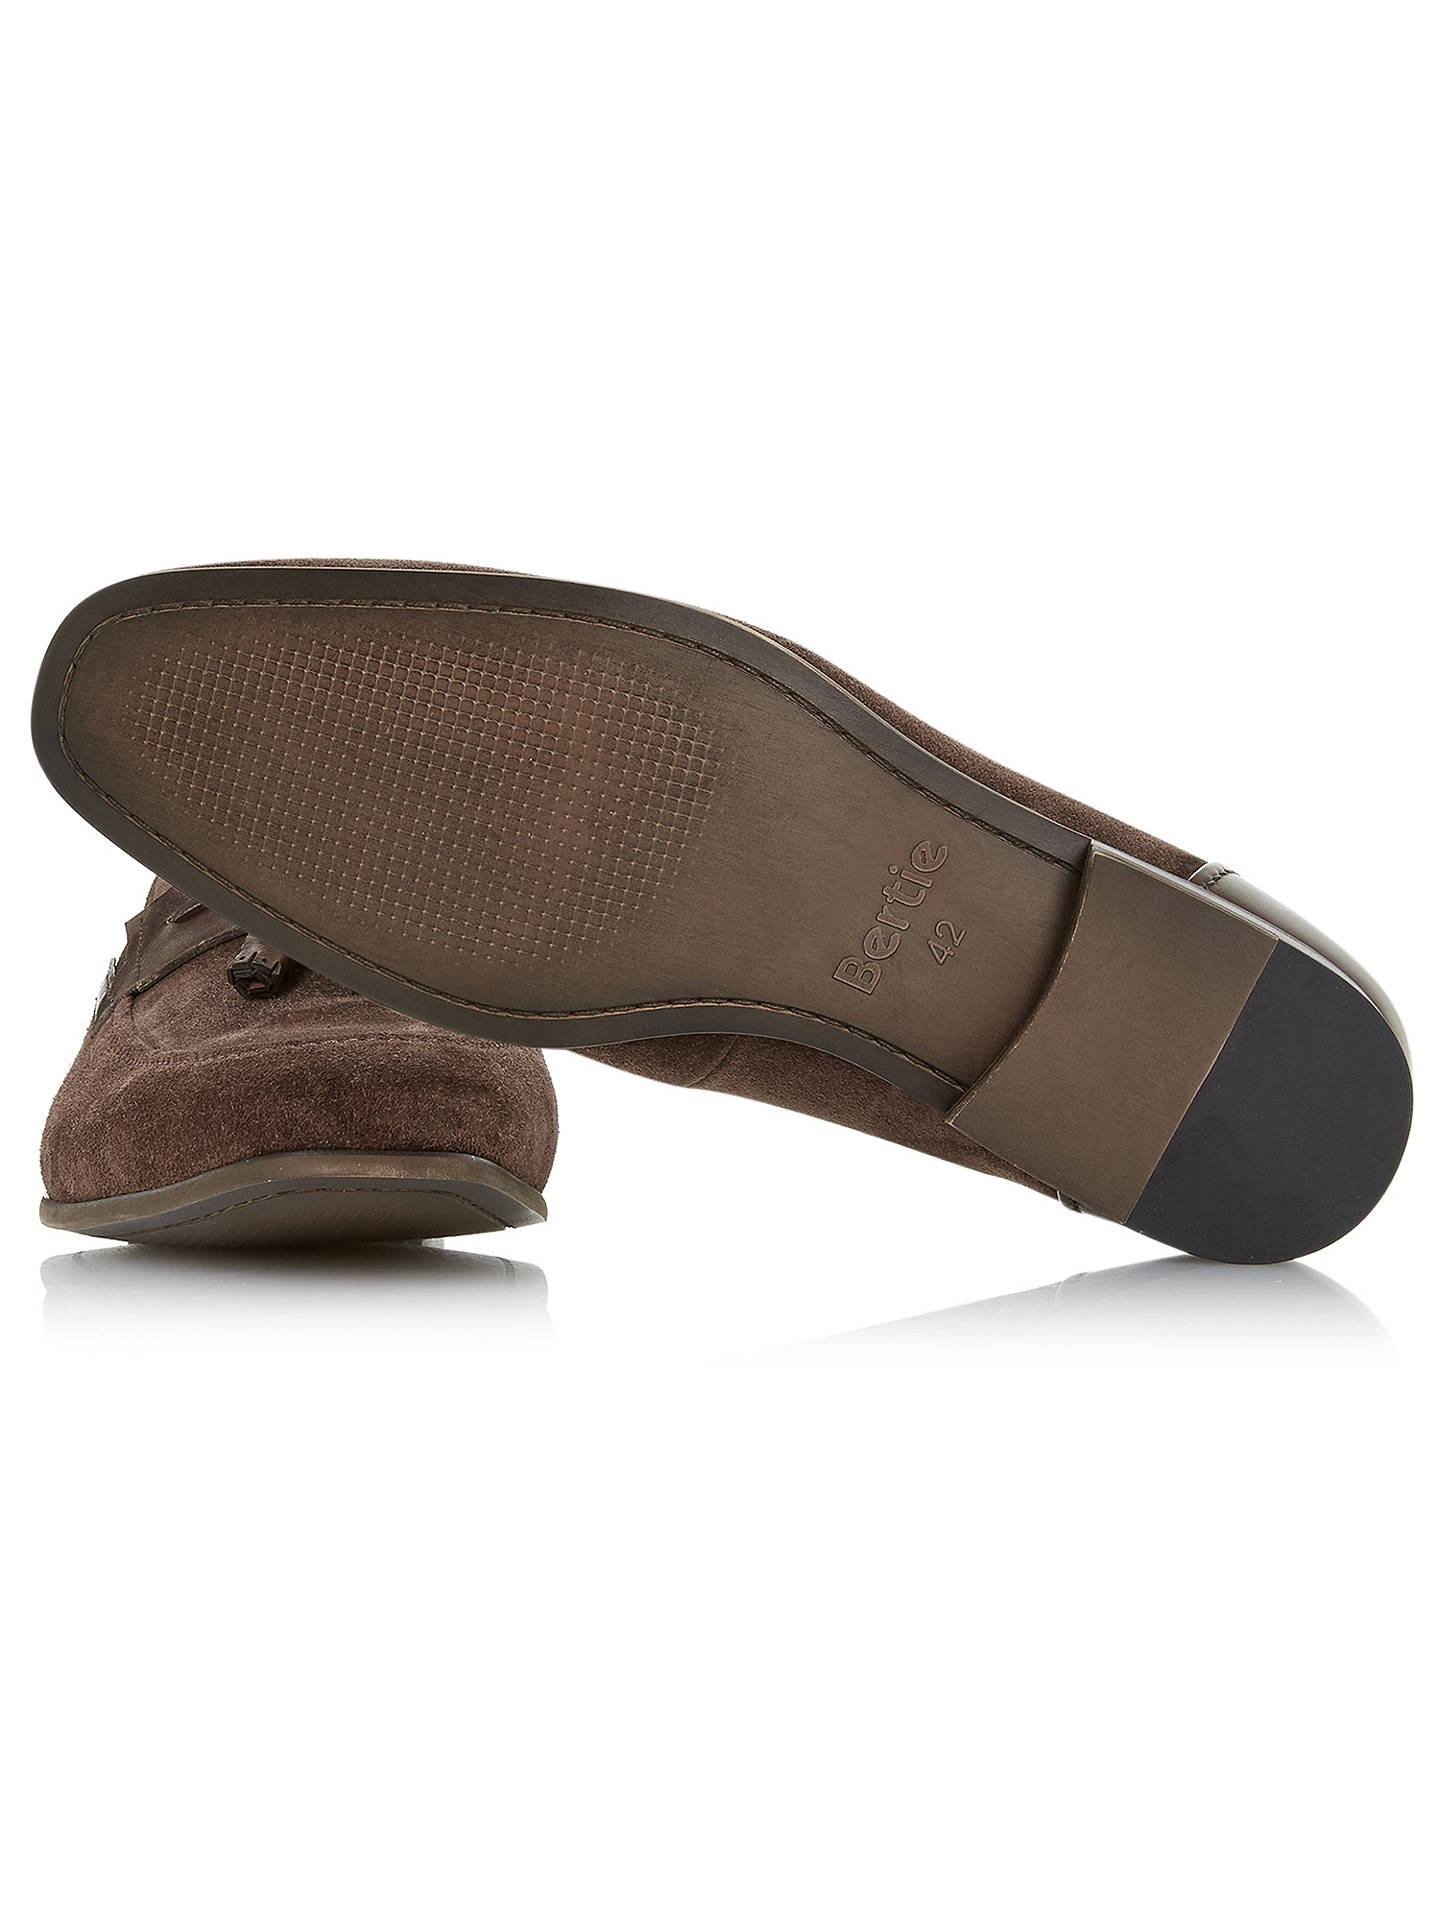 Buy Bertie Propoganda Suede Tassel Loafers, Brown, 6 Online at johnlewis.com